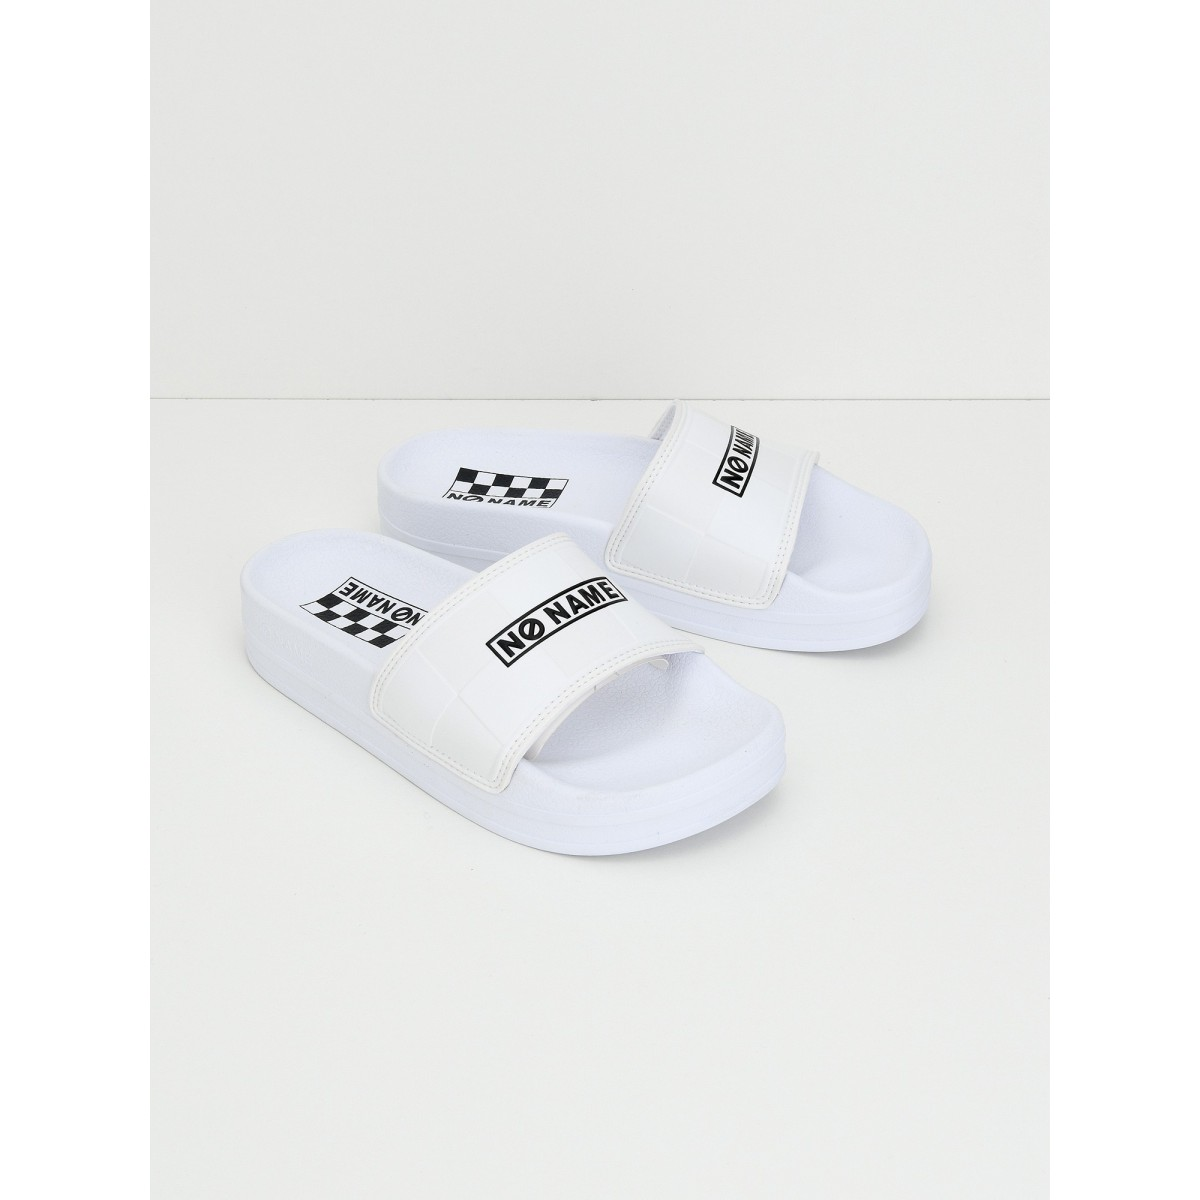 No Name Jungle Slap - Rubber - White/White